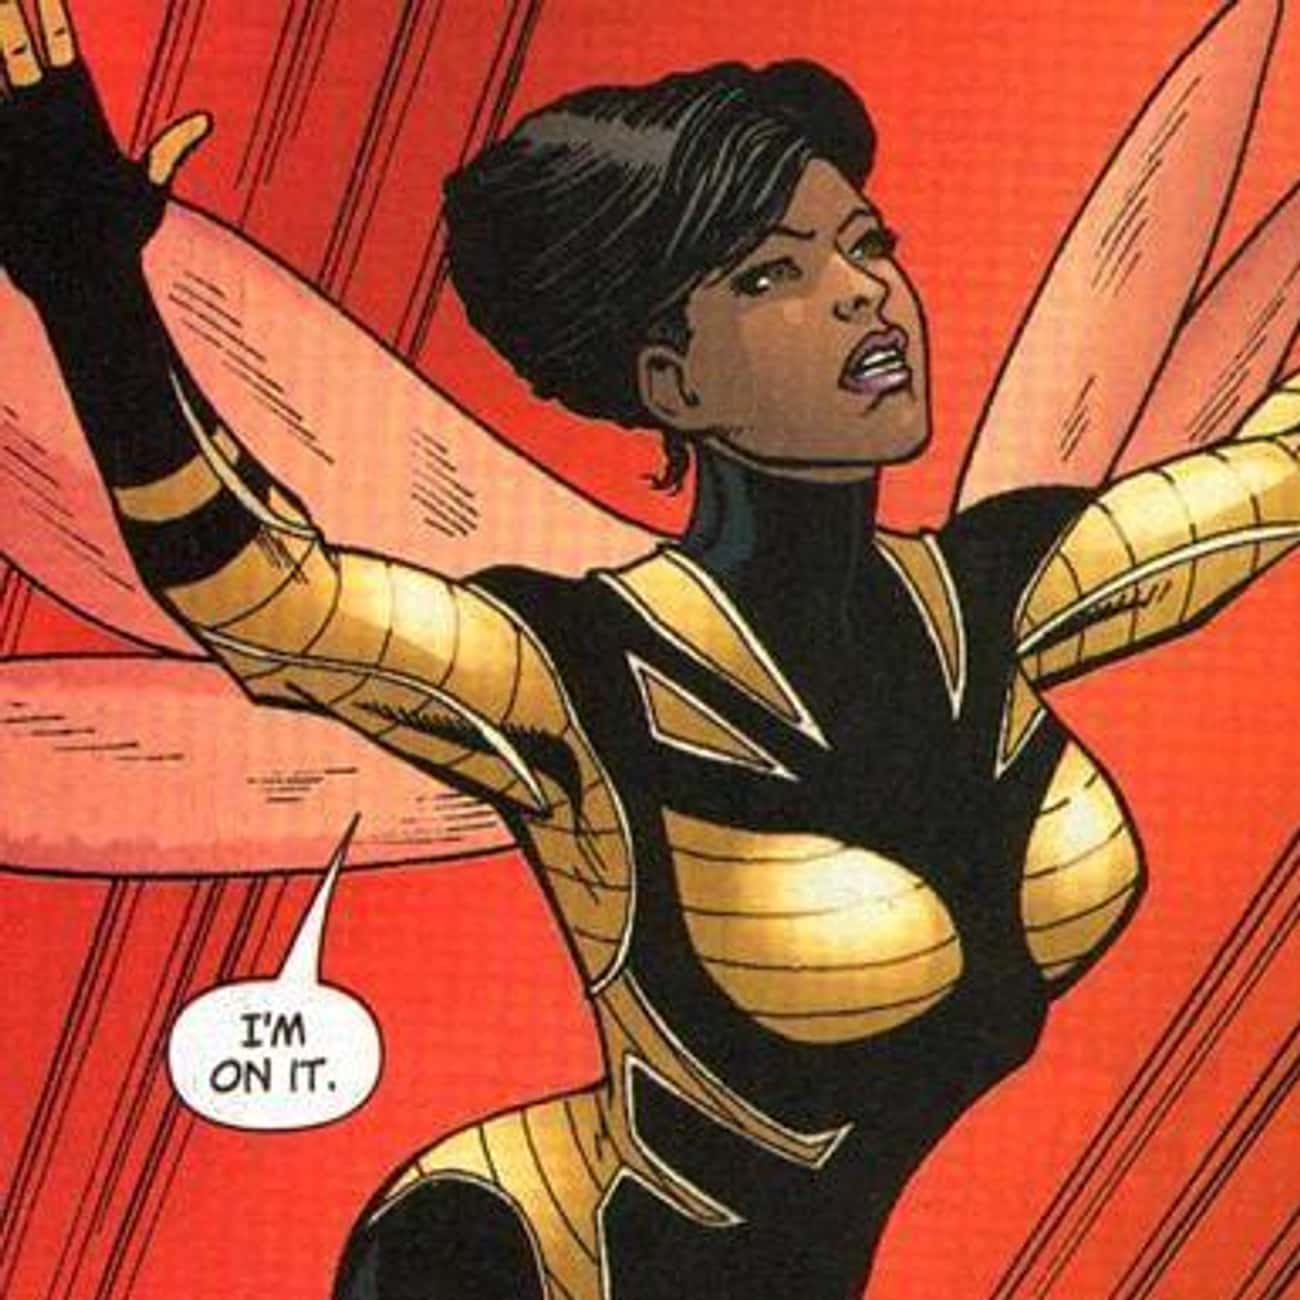 Bumblebee is listed (or ranked) 3 on the list Greatest Black Female Superheroes